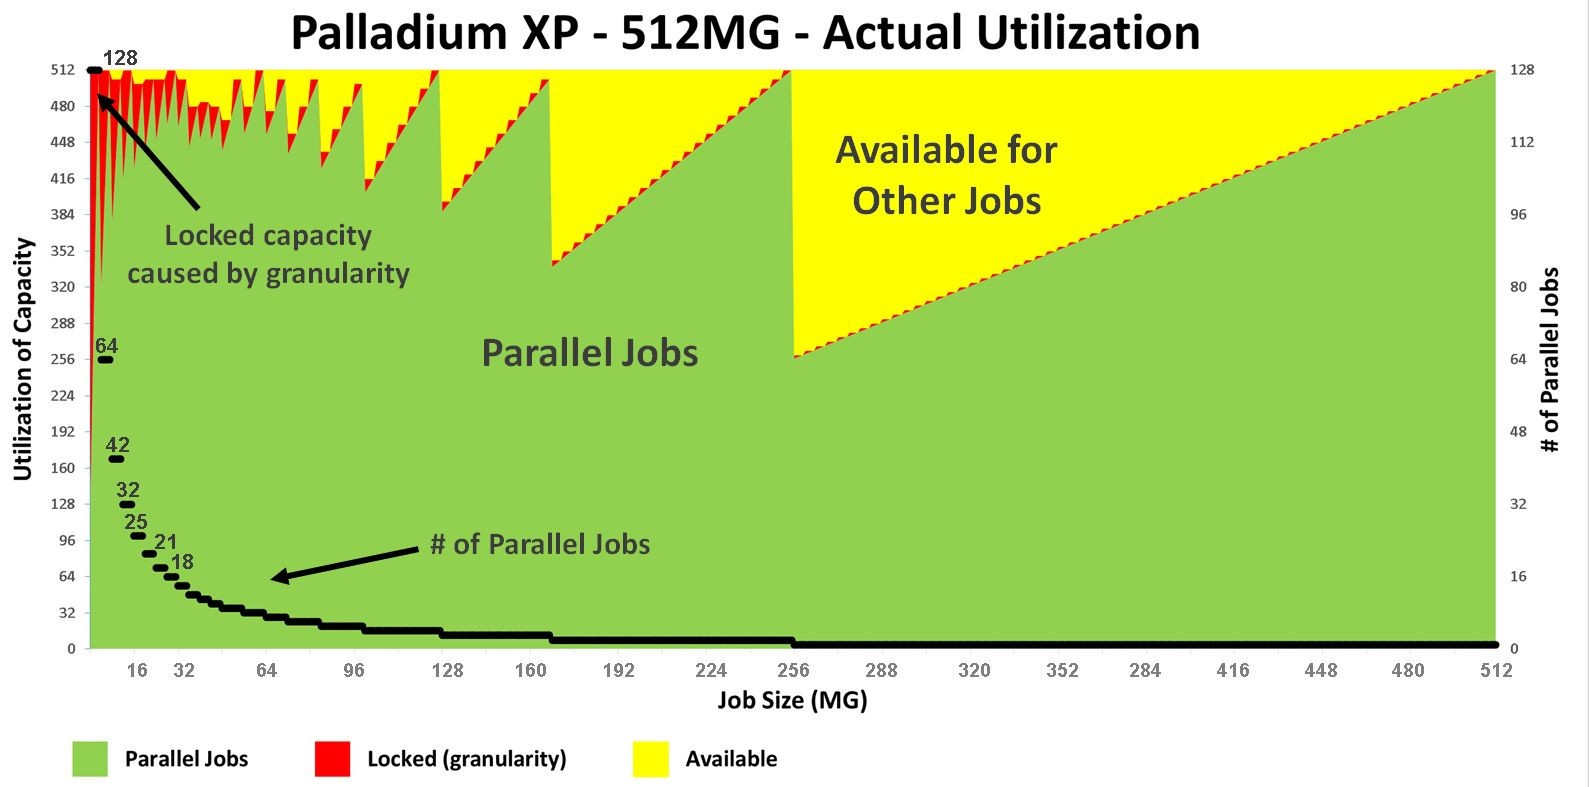 Palladium-XP-Utilization-512MG